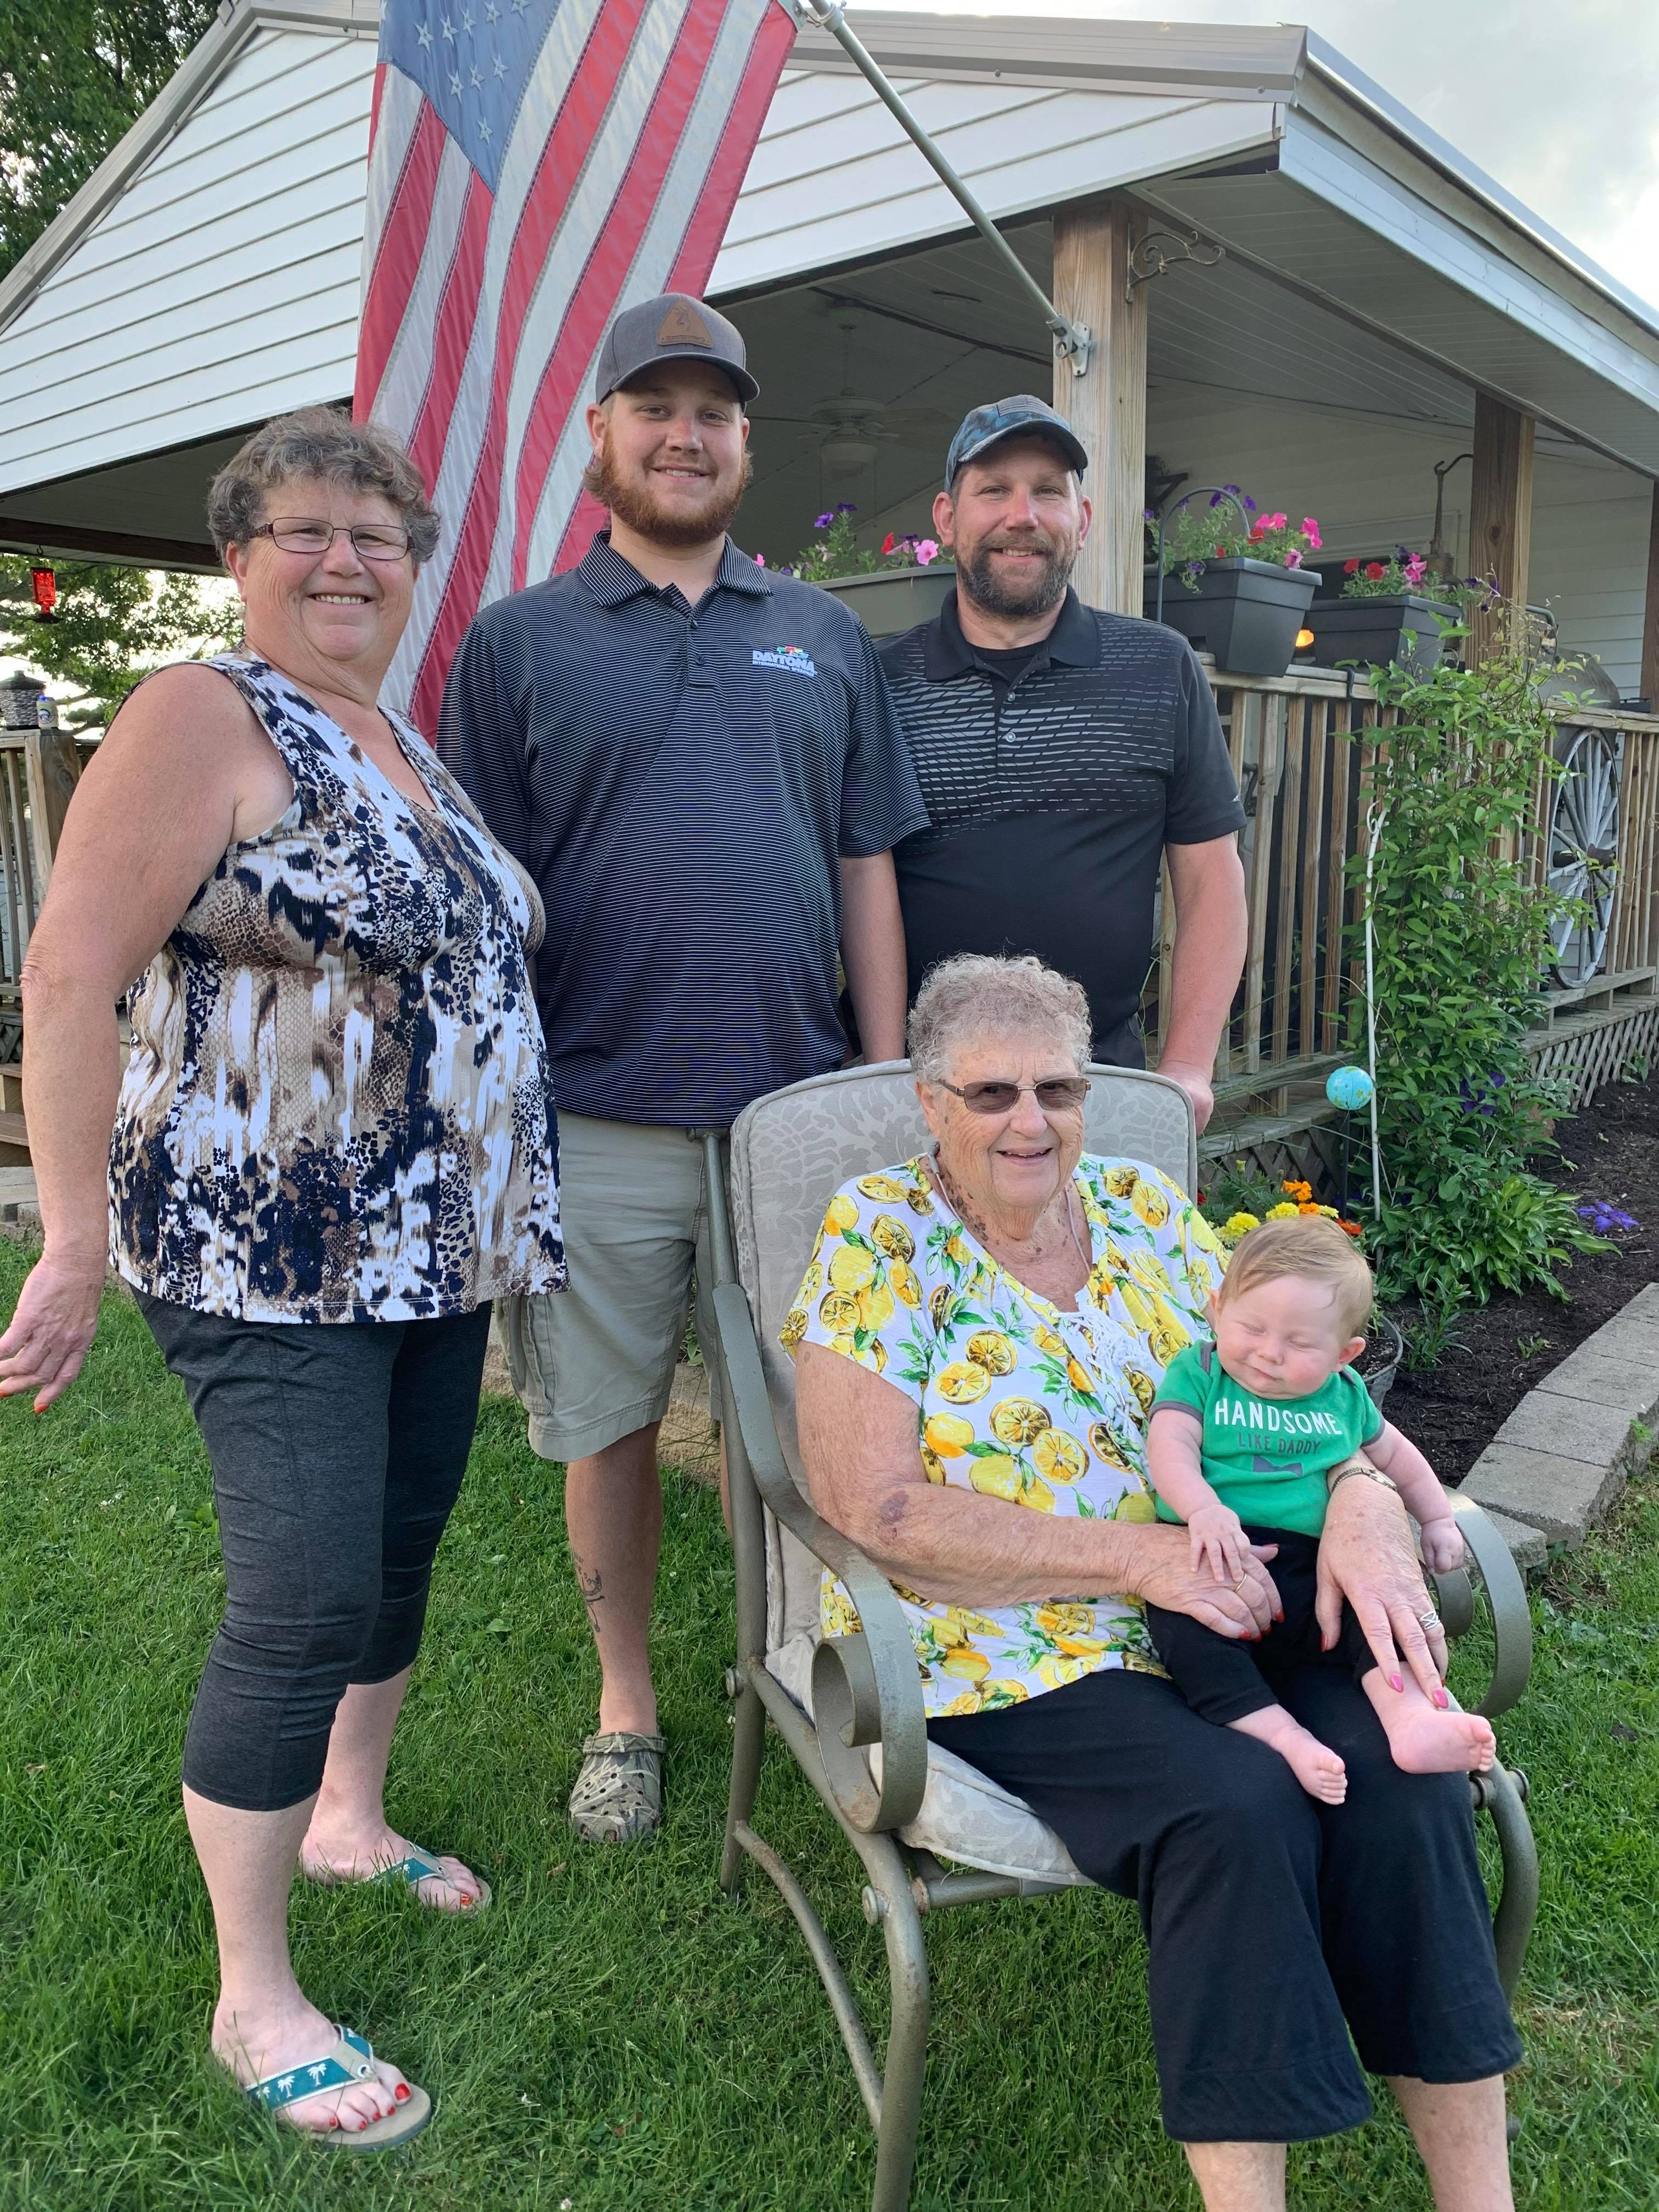 A celebration of 5 generations! Flo Best, Shippenville, is holding her great-great grandson Wesley, son of Will Cotherman, Hawthorne; Grandson of Mike Cotherman of Shippenville and Great-Grandson of Kathy Glosser of Shippenville. Wesley was born in March and Flo just returned from wintering in FL.